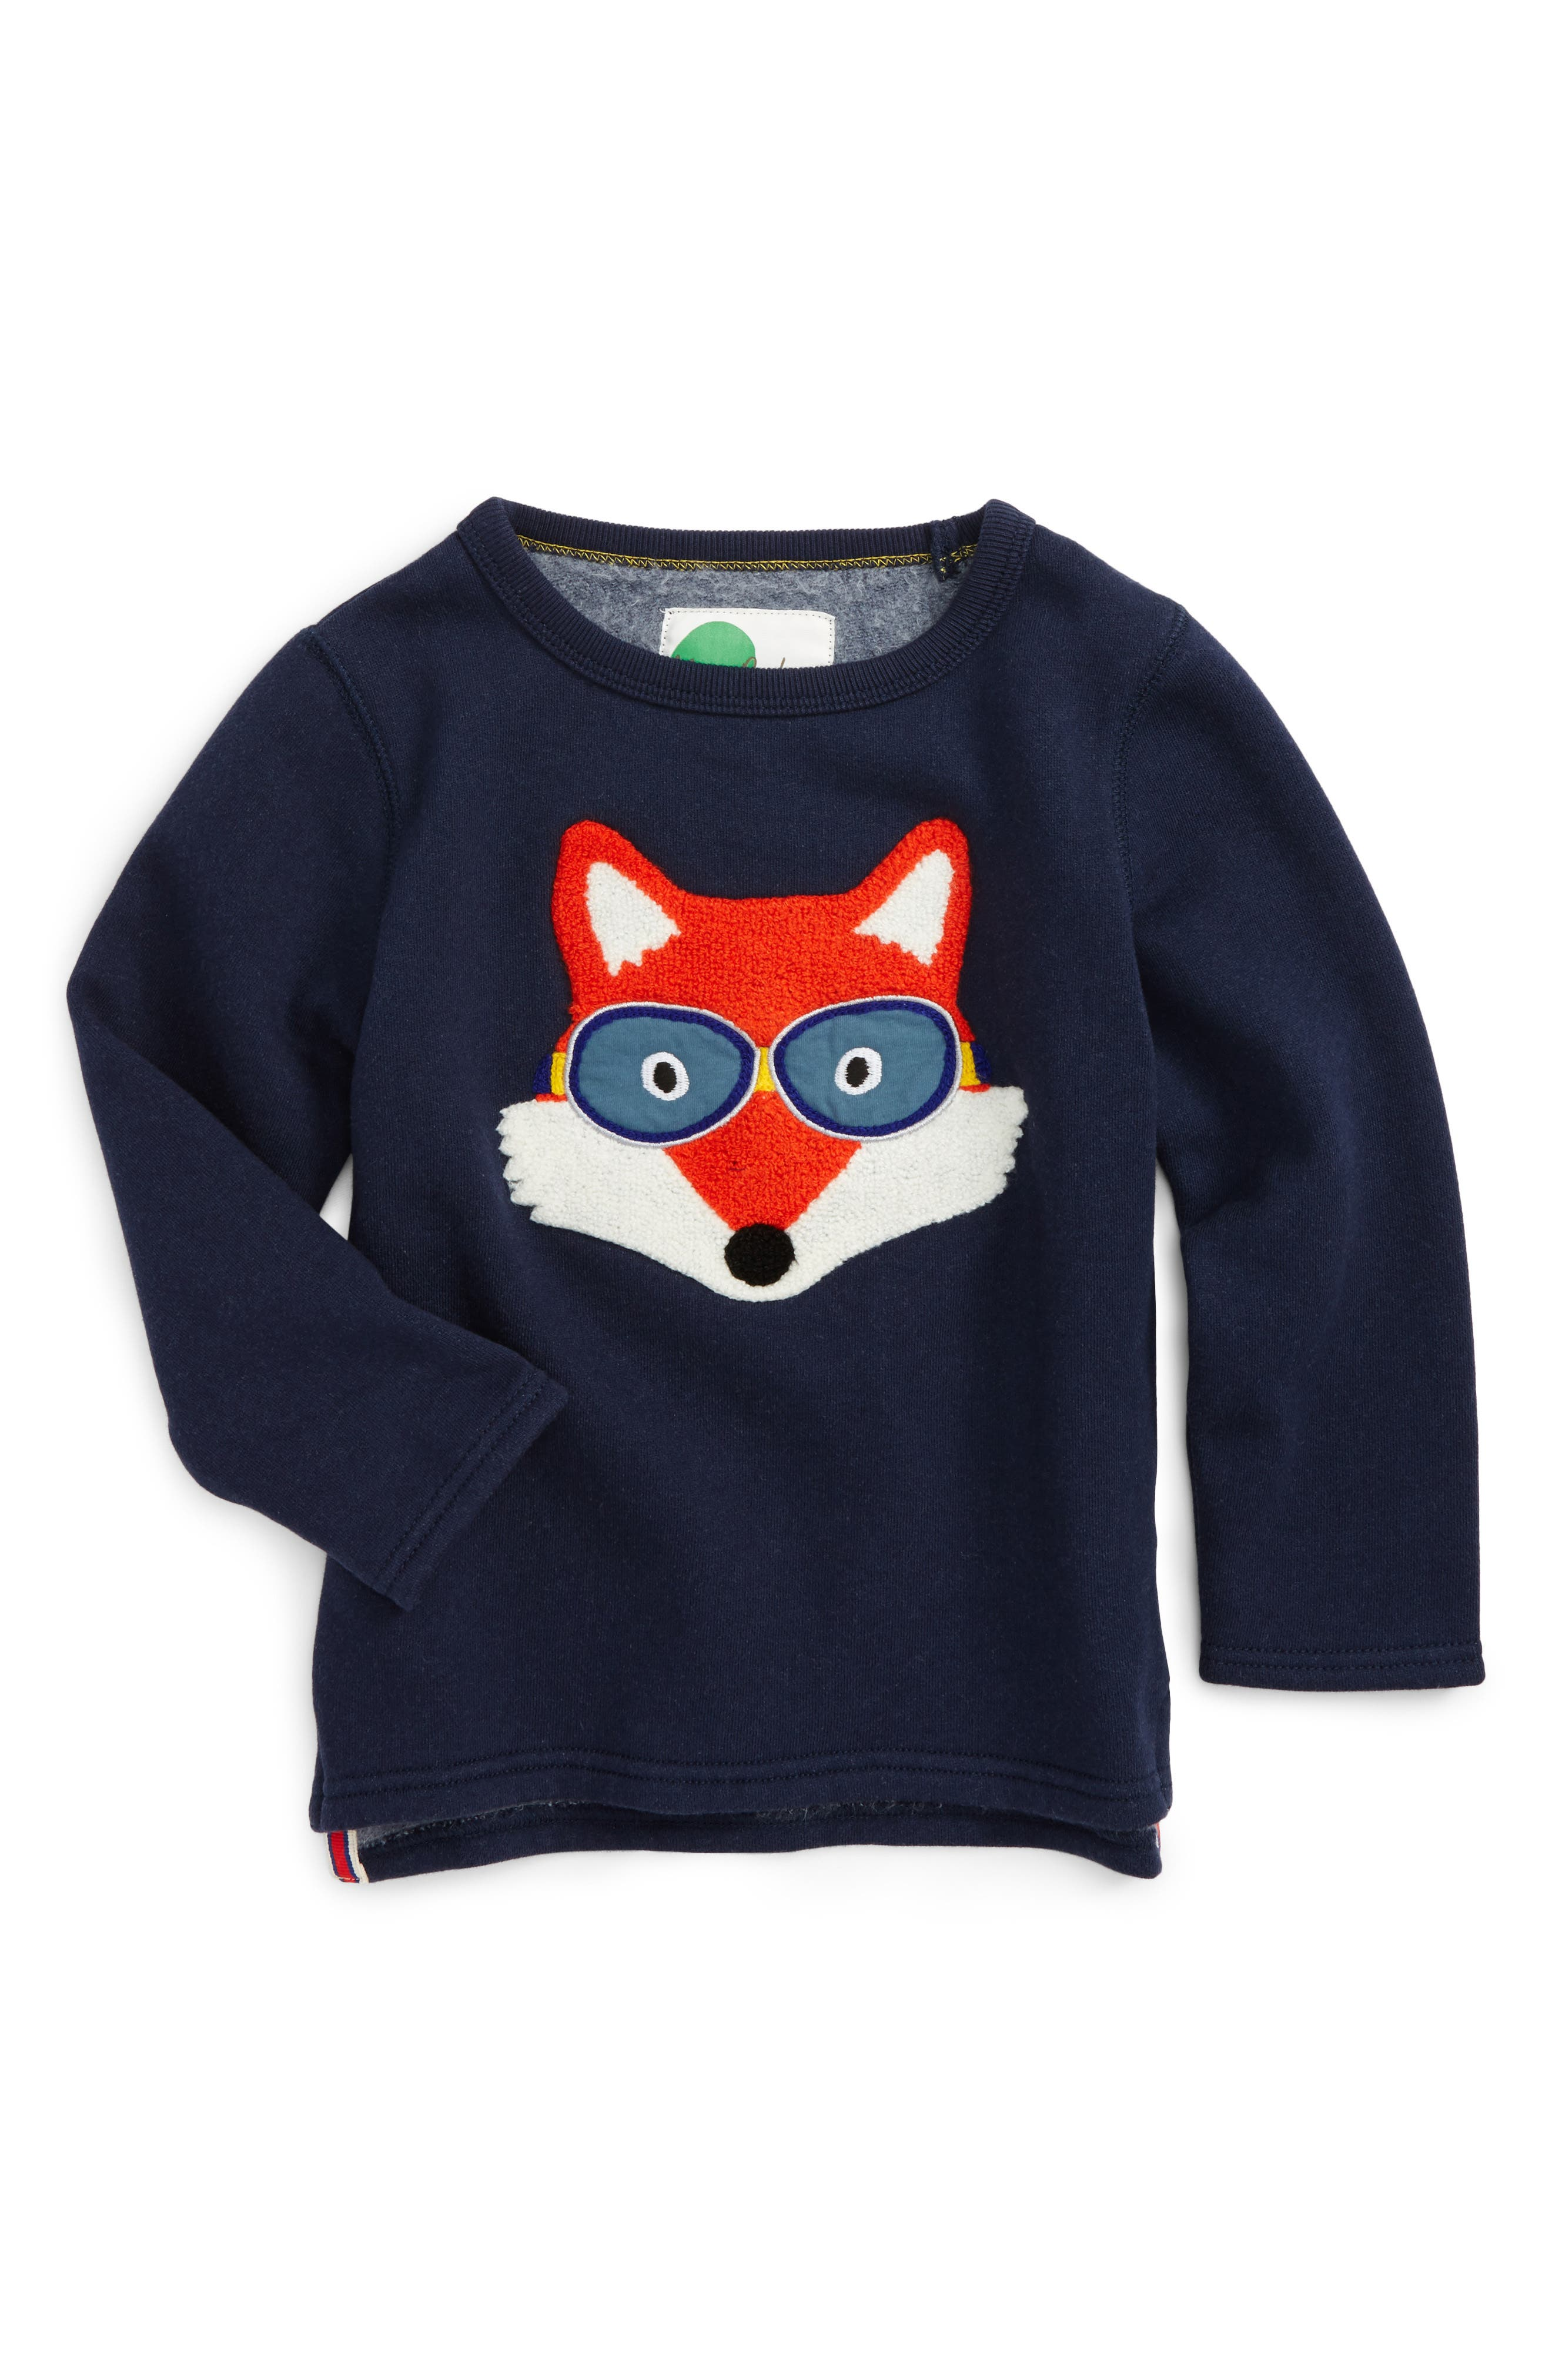 Alternate Image 1 Selected - Mini Boden Open Road Sweatshirt (Toddler Boys, Little Boys & Big Boys)